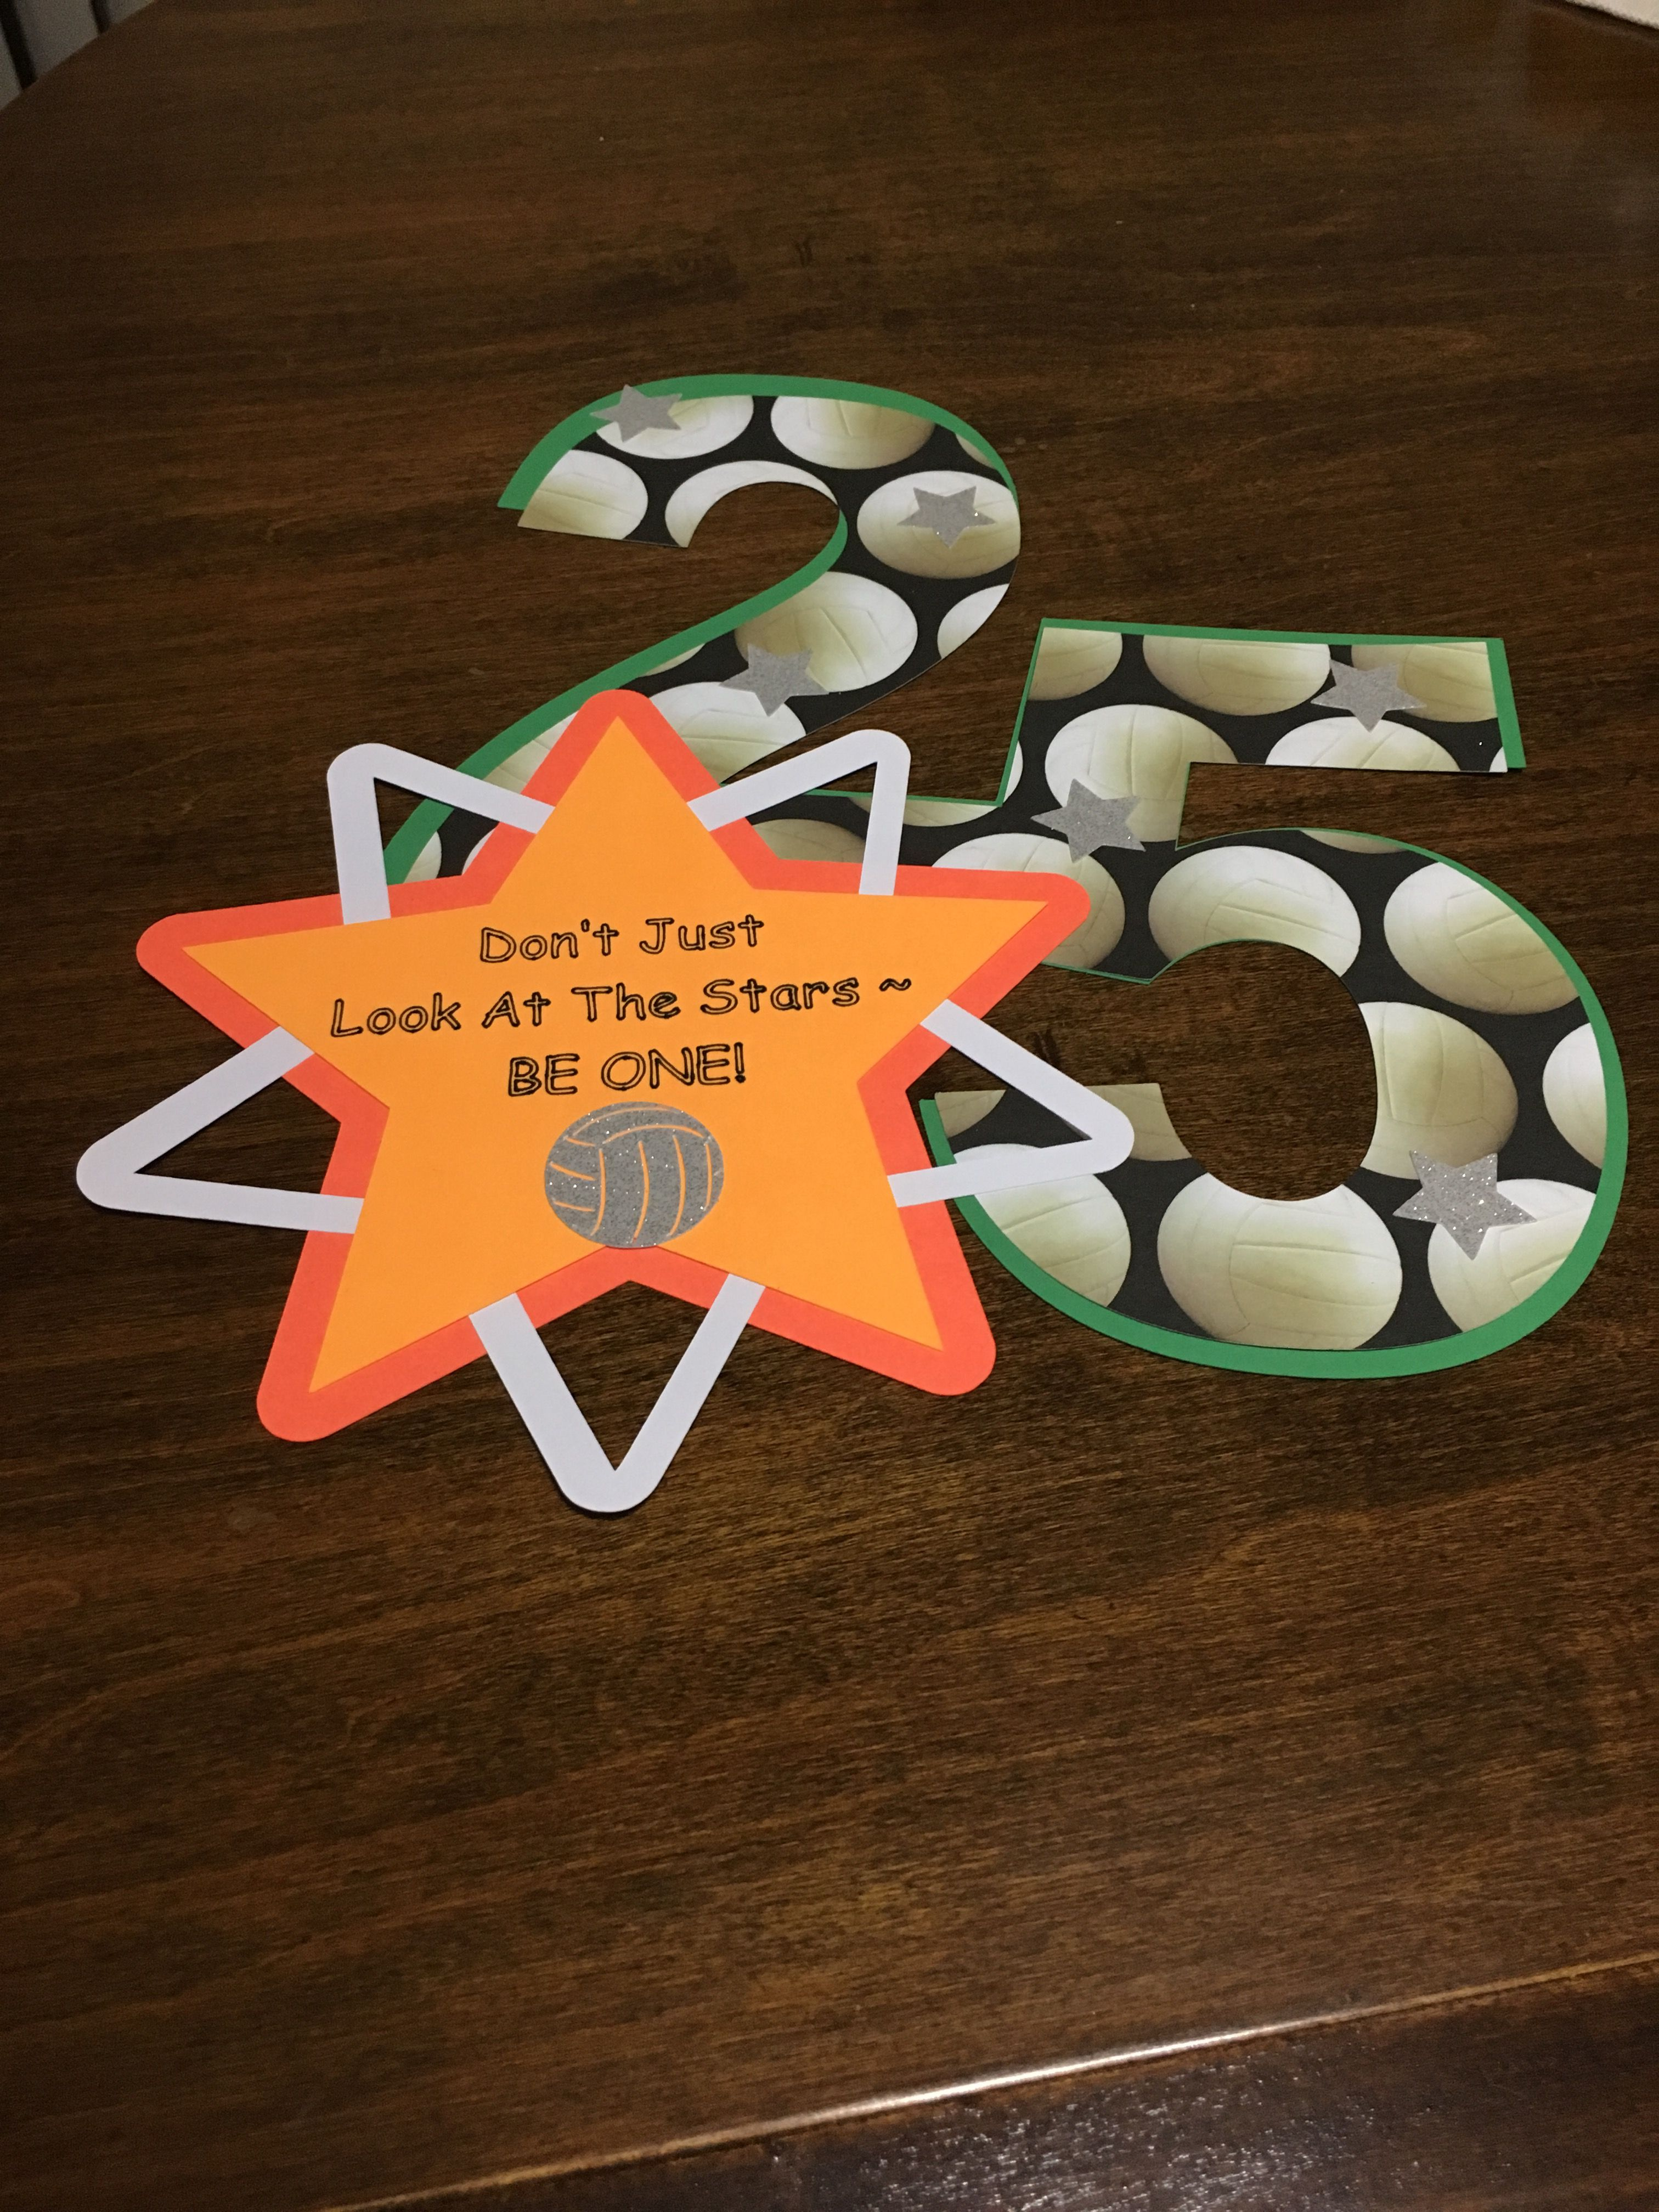 Pin By Angie Cowell On Volleyball Sports Locker Locker Tags School Work